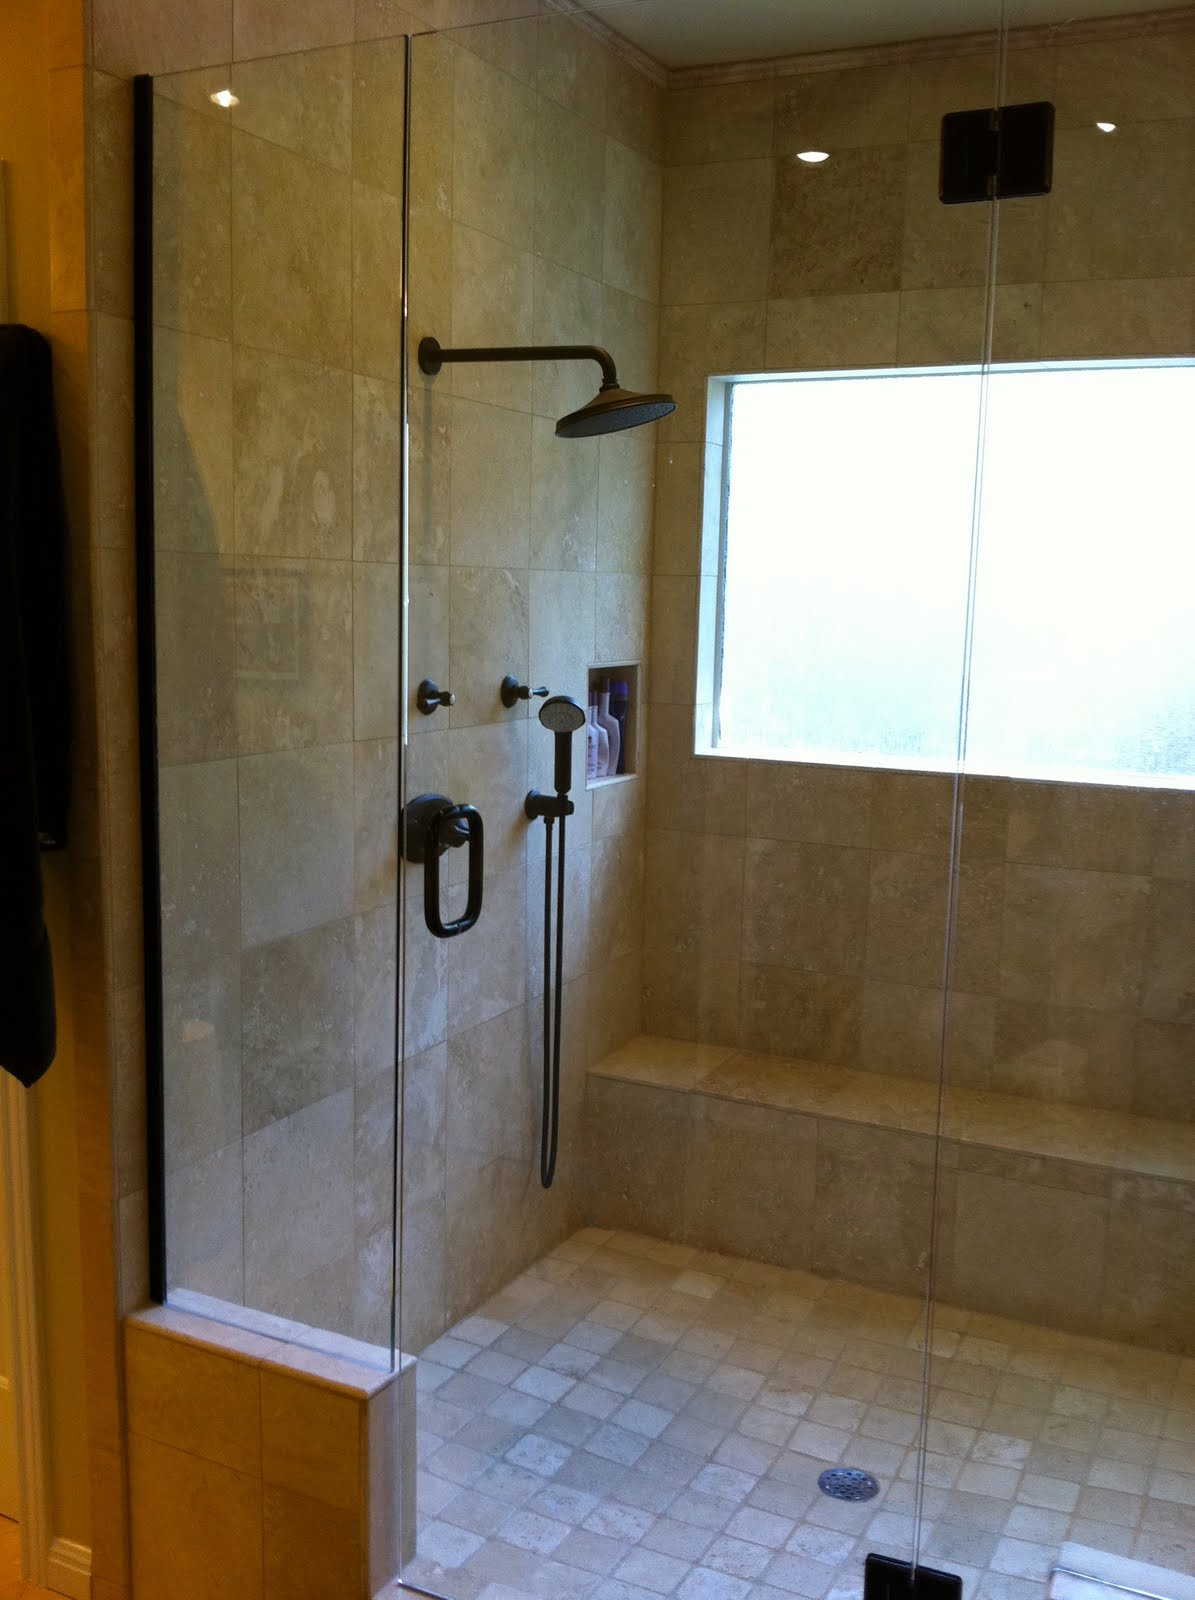 Bathroom idea shower tile bathroom shower bathroom 2 bp blogspot com - Master Bathroom Remodel With Double Shower